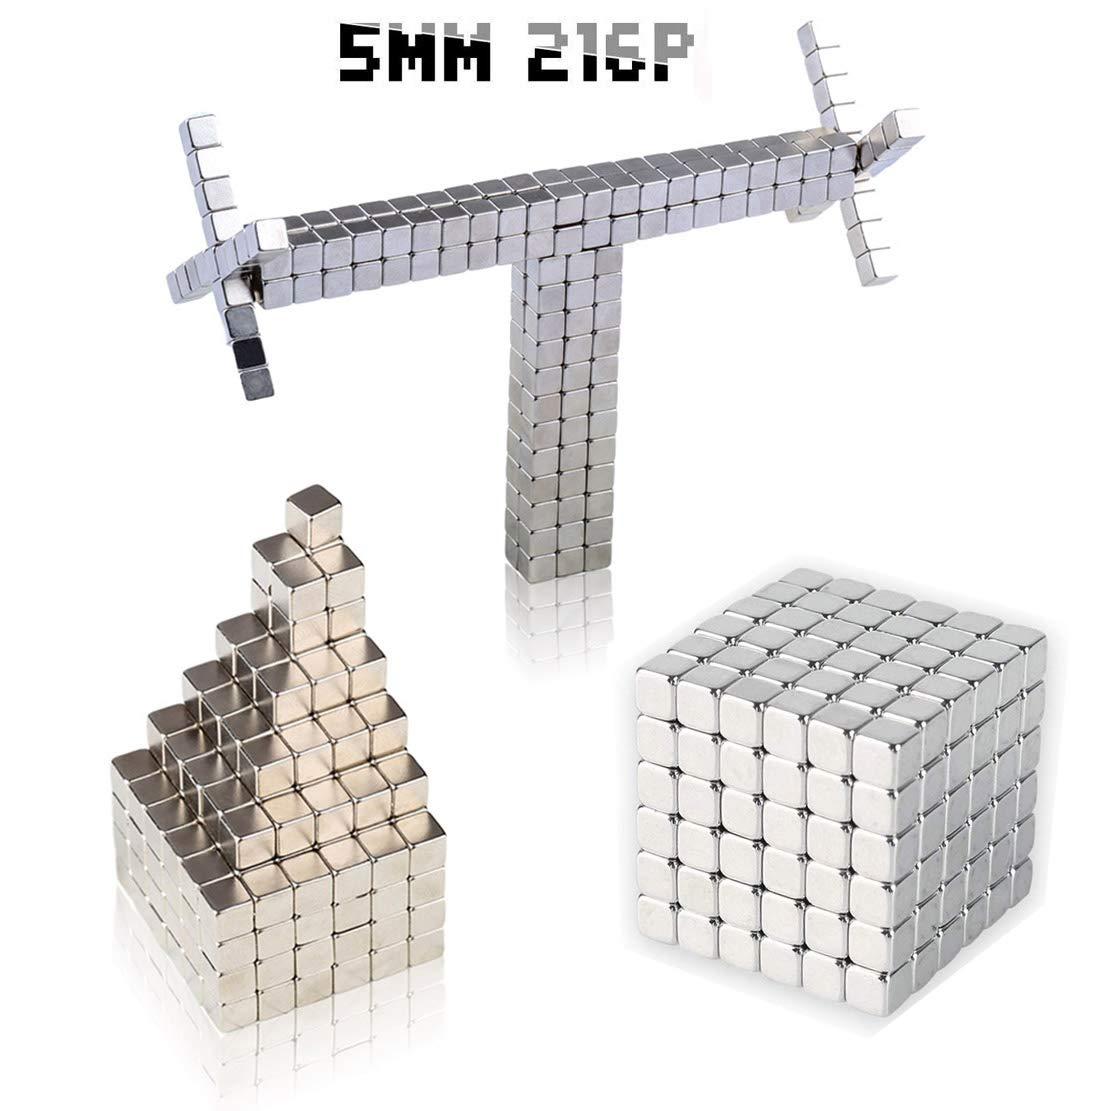 Magnetic Sculpture Blocks Cubes, MOYANG Magnet Sculpture Cubes 5mm 216P DIY Building Puzzle Office Toy & Stress Relief for Adults and Kids Intelligence Learning